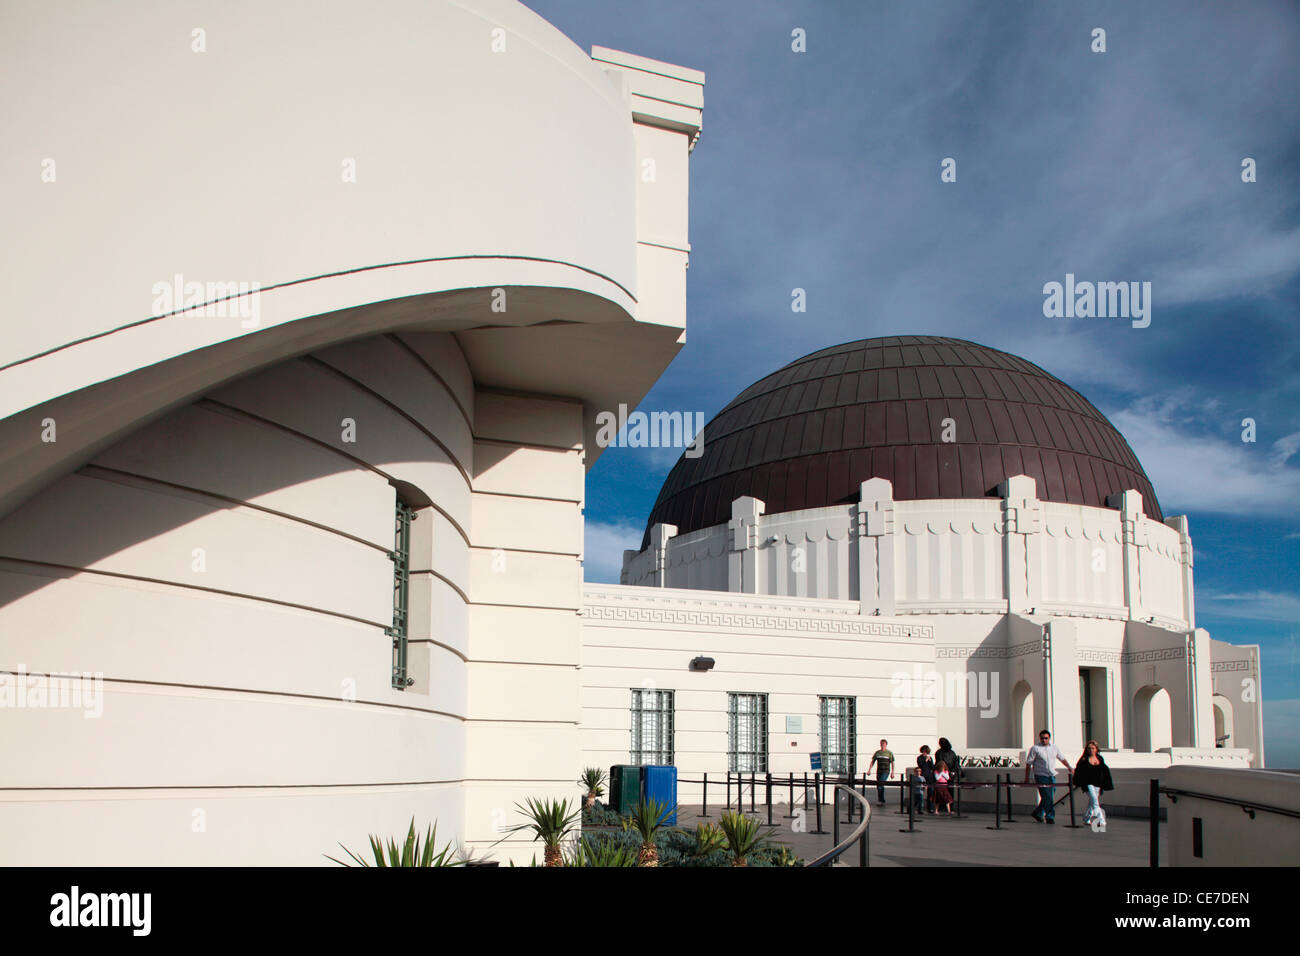 USA, California, Los Angeles, Griffith Observatory - Stock Image